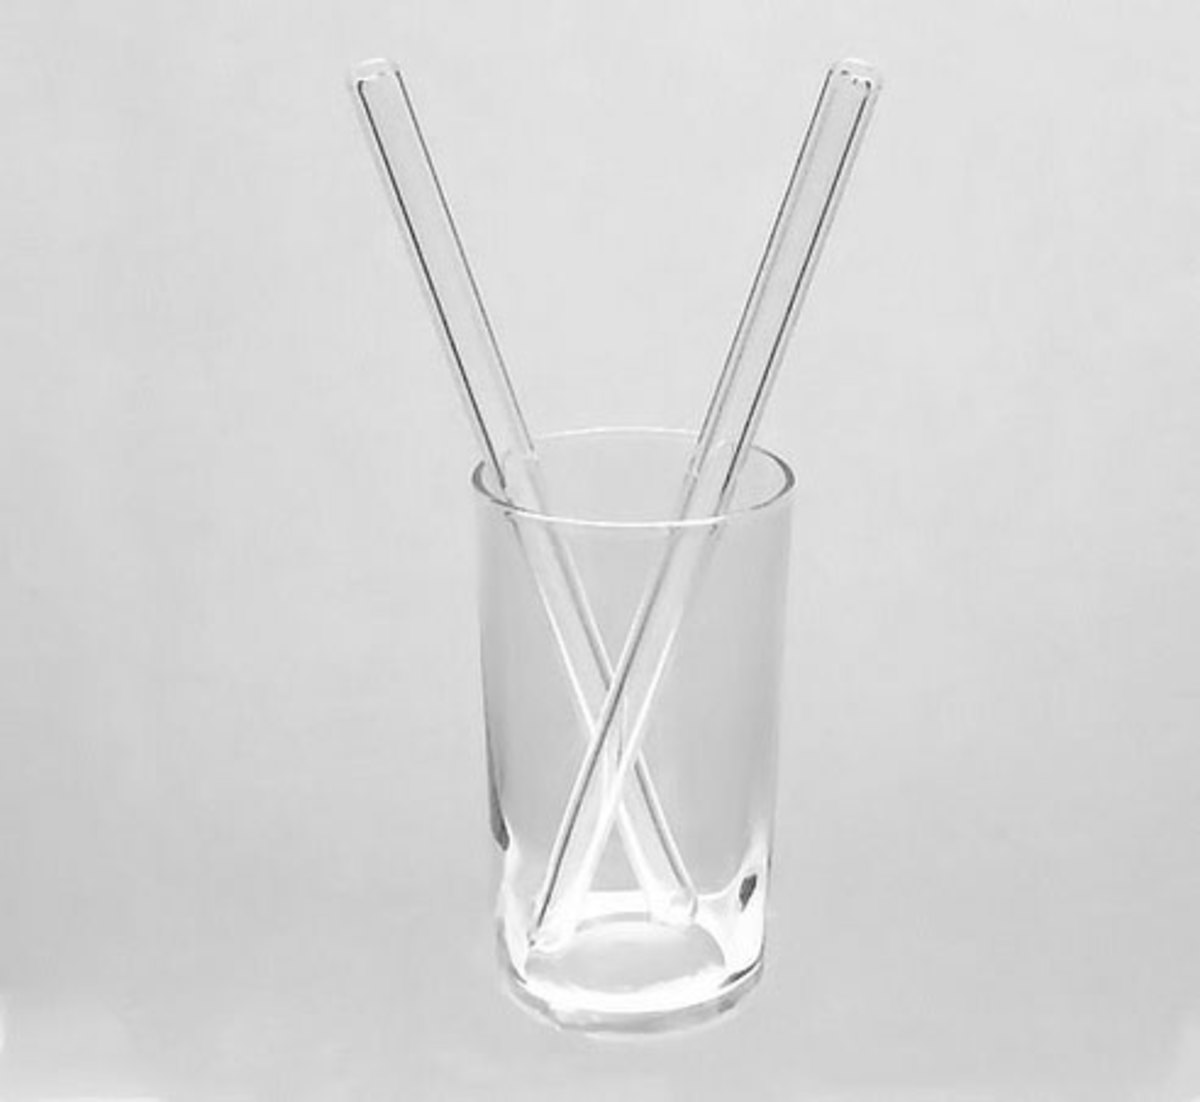 dharma glass straw